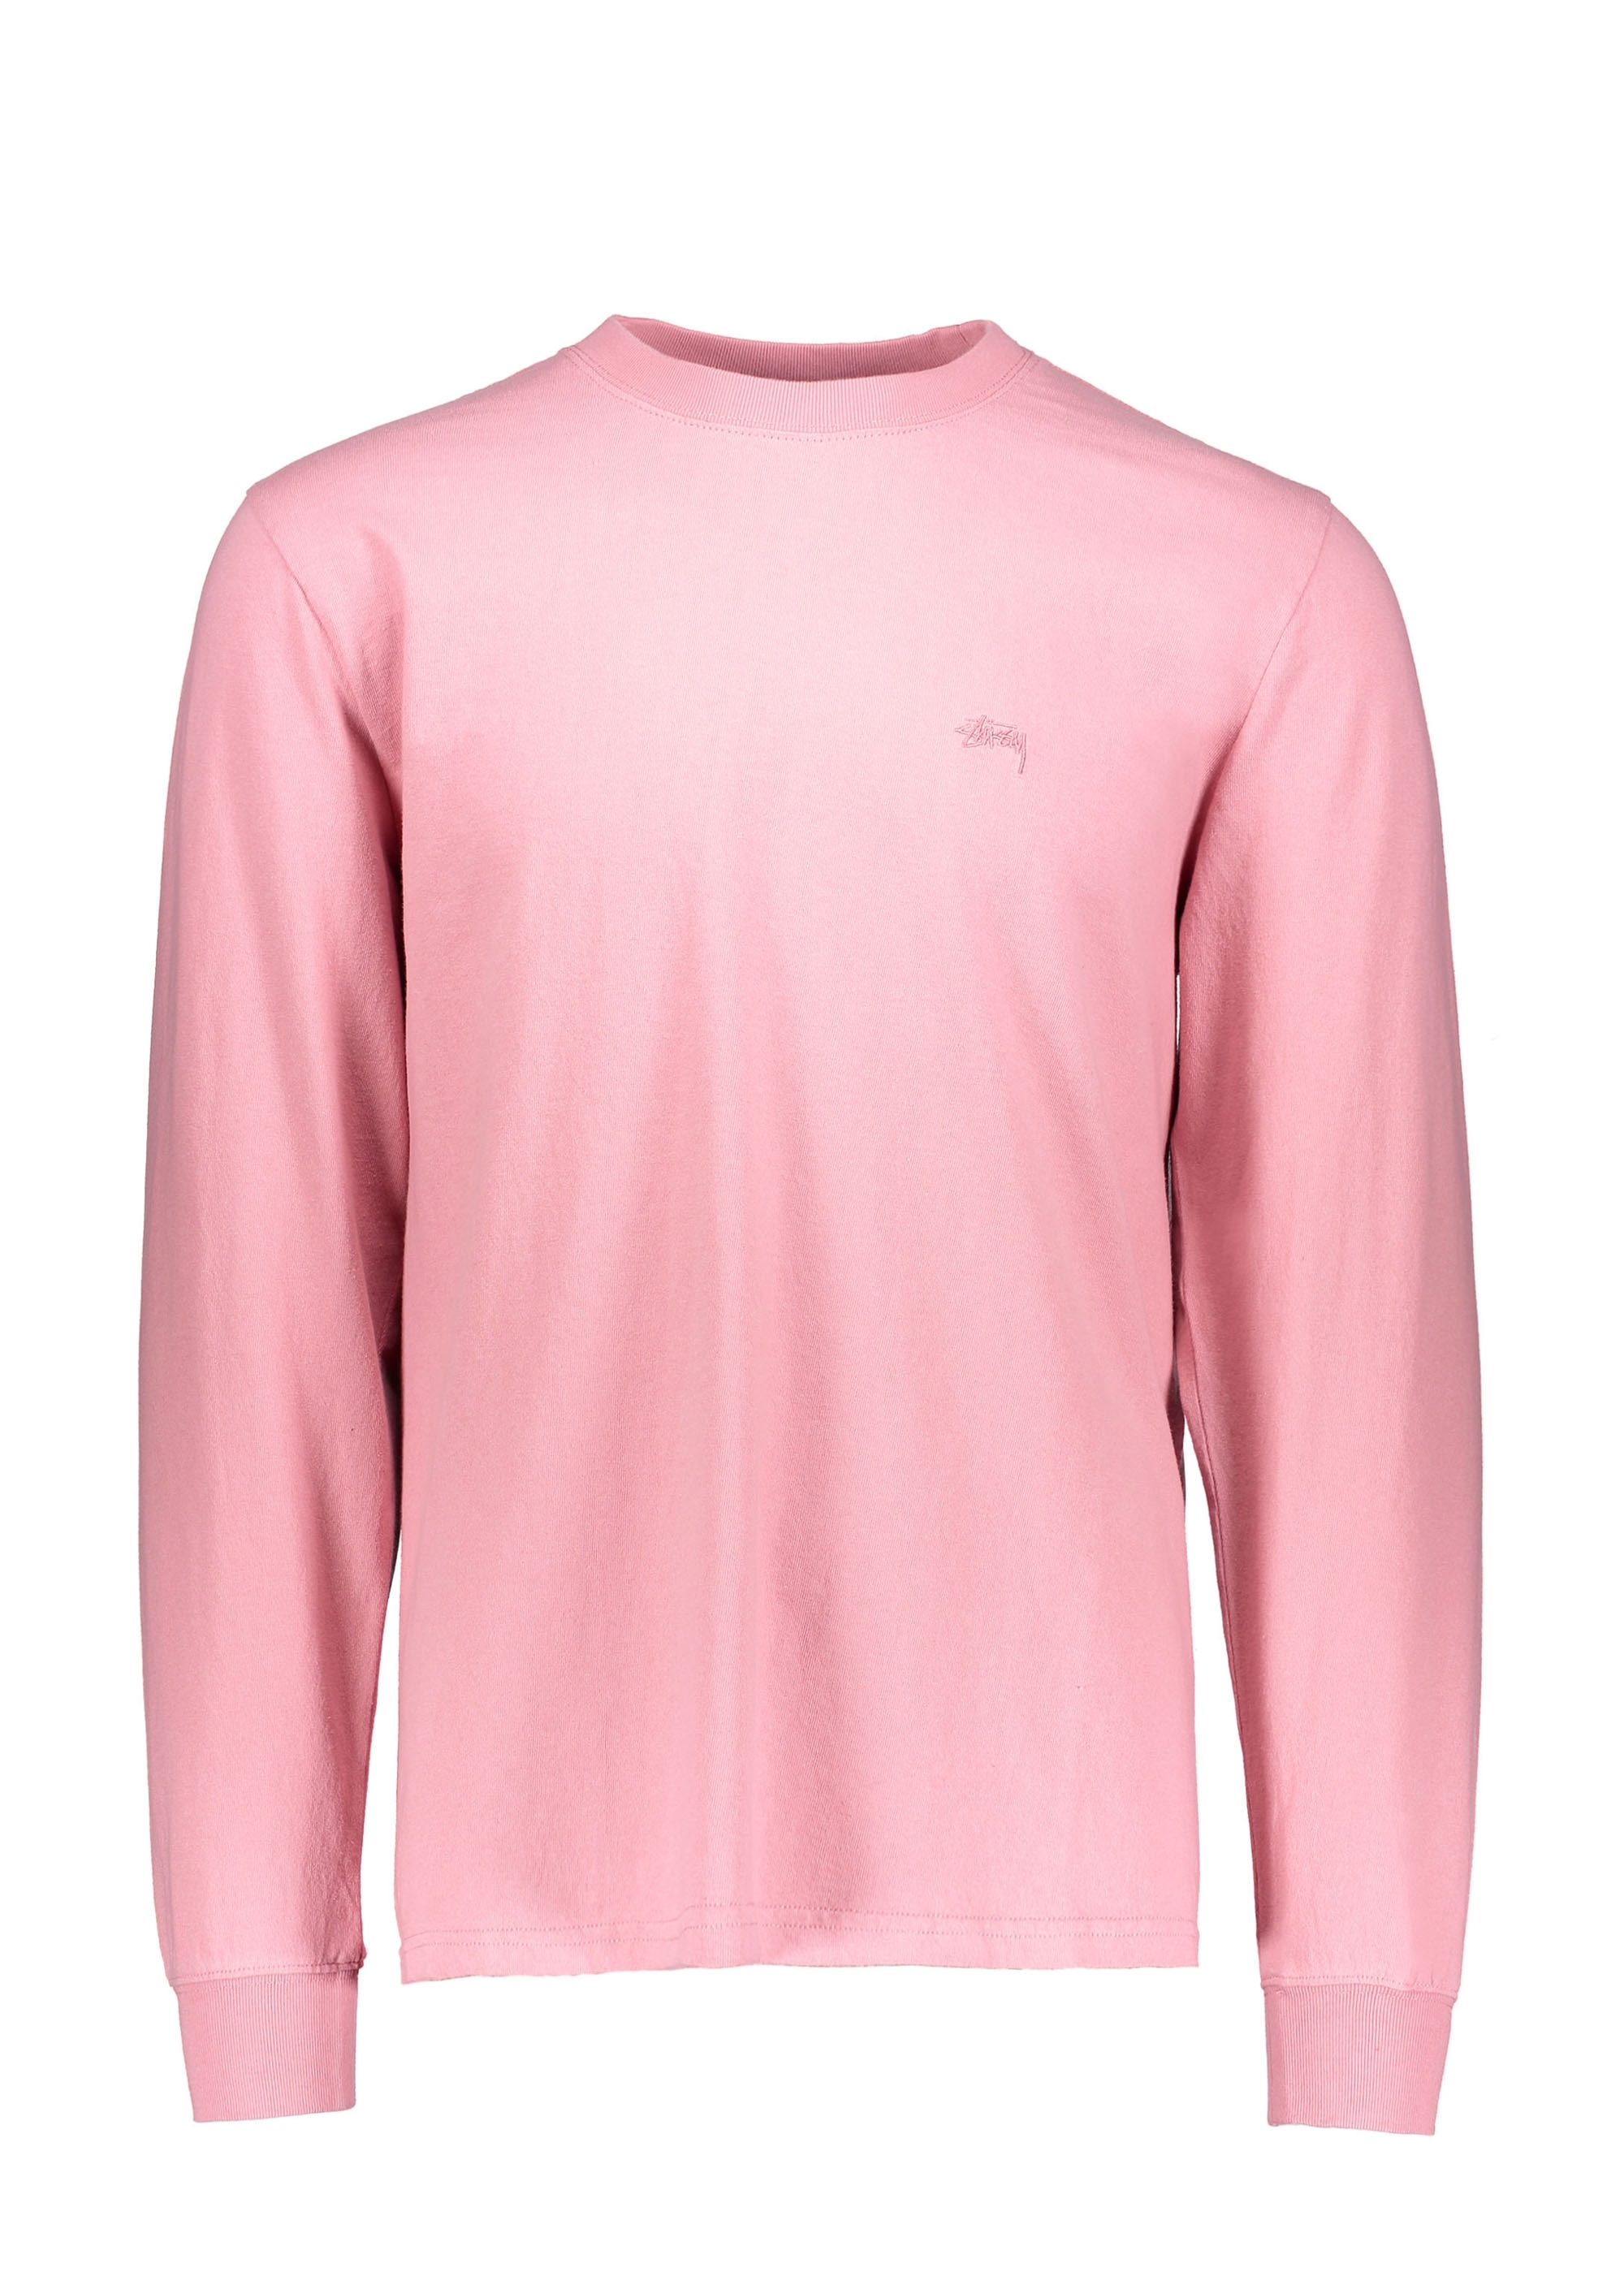 91a88134 Stussy Stock LS Jersey - Pink - Triads Mens from Triads UK